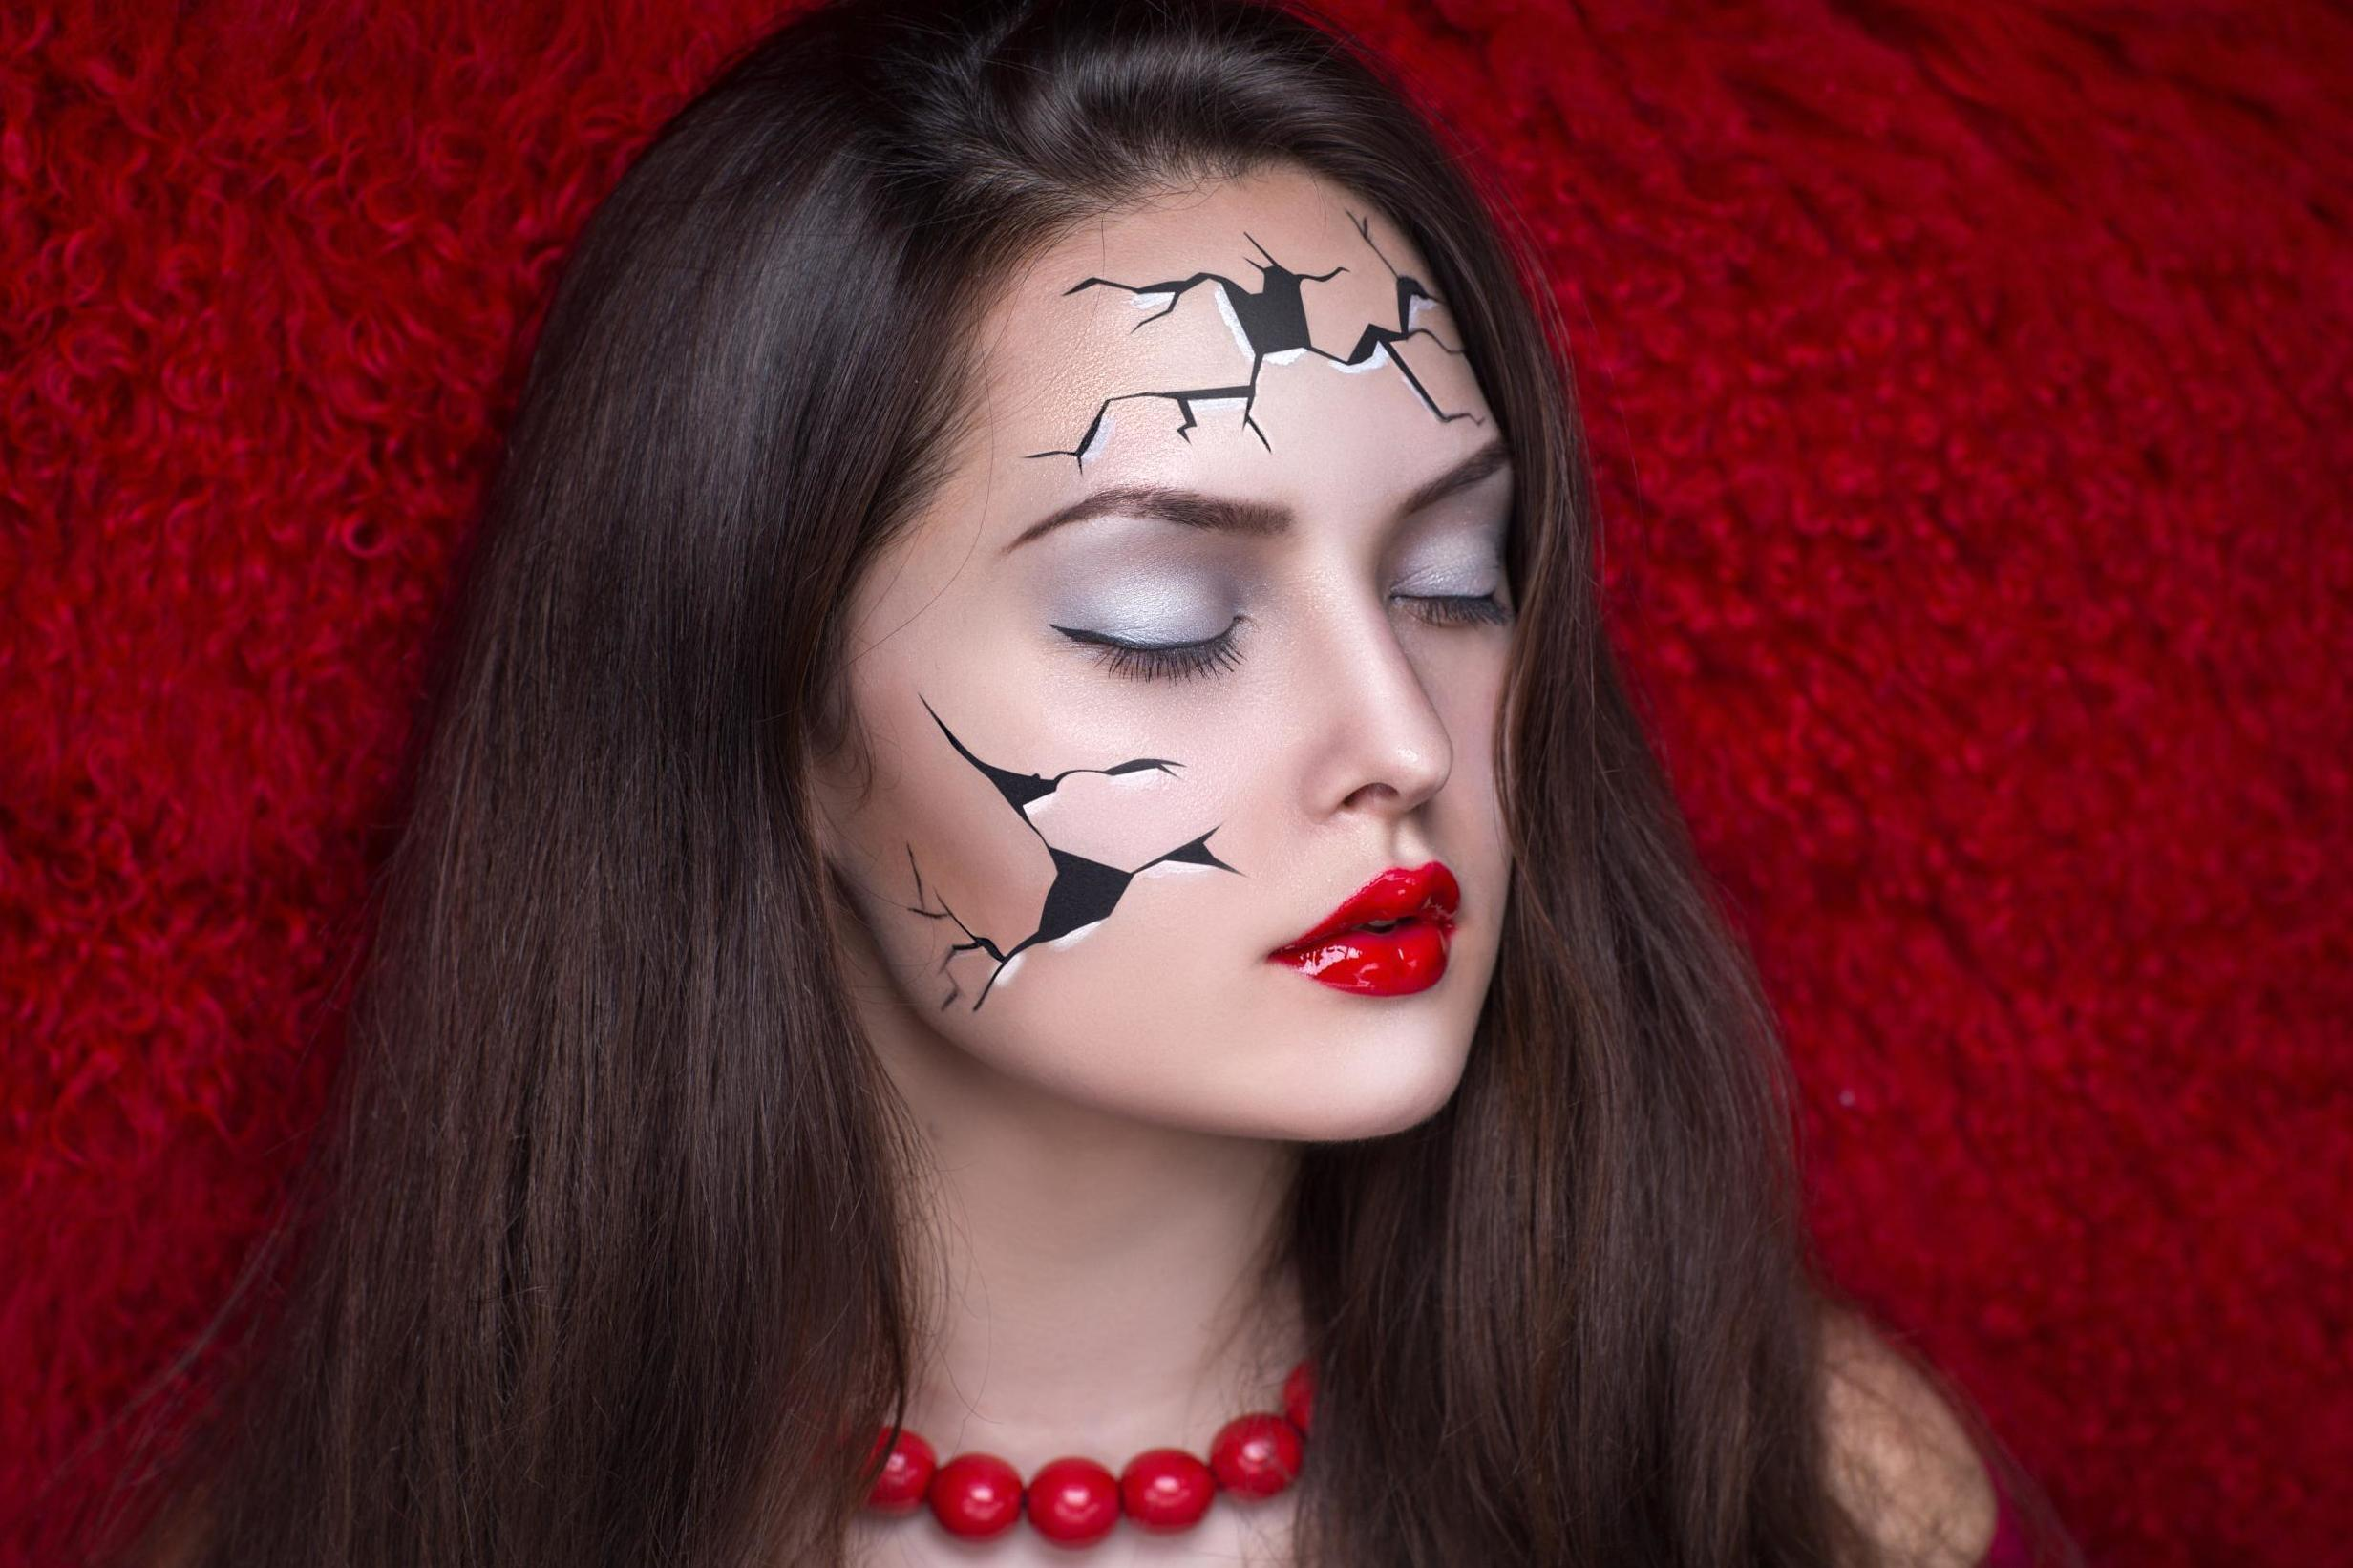 halloween makeup ideas the most popular and spooky beauty looks for 2018 the independent